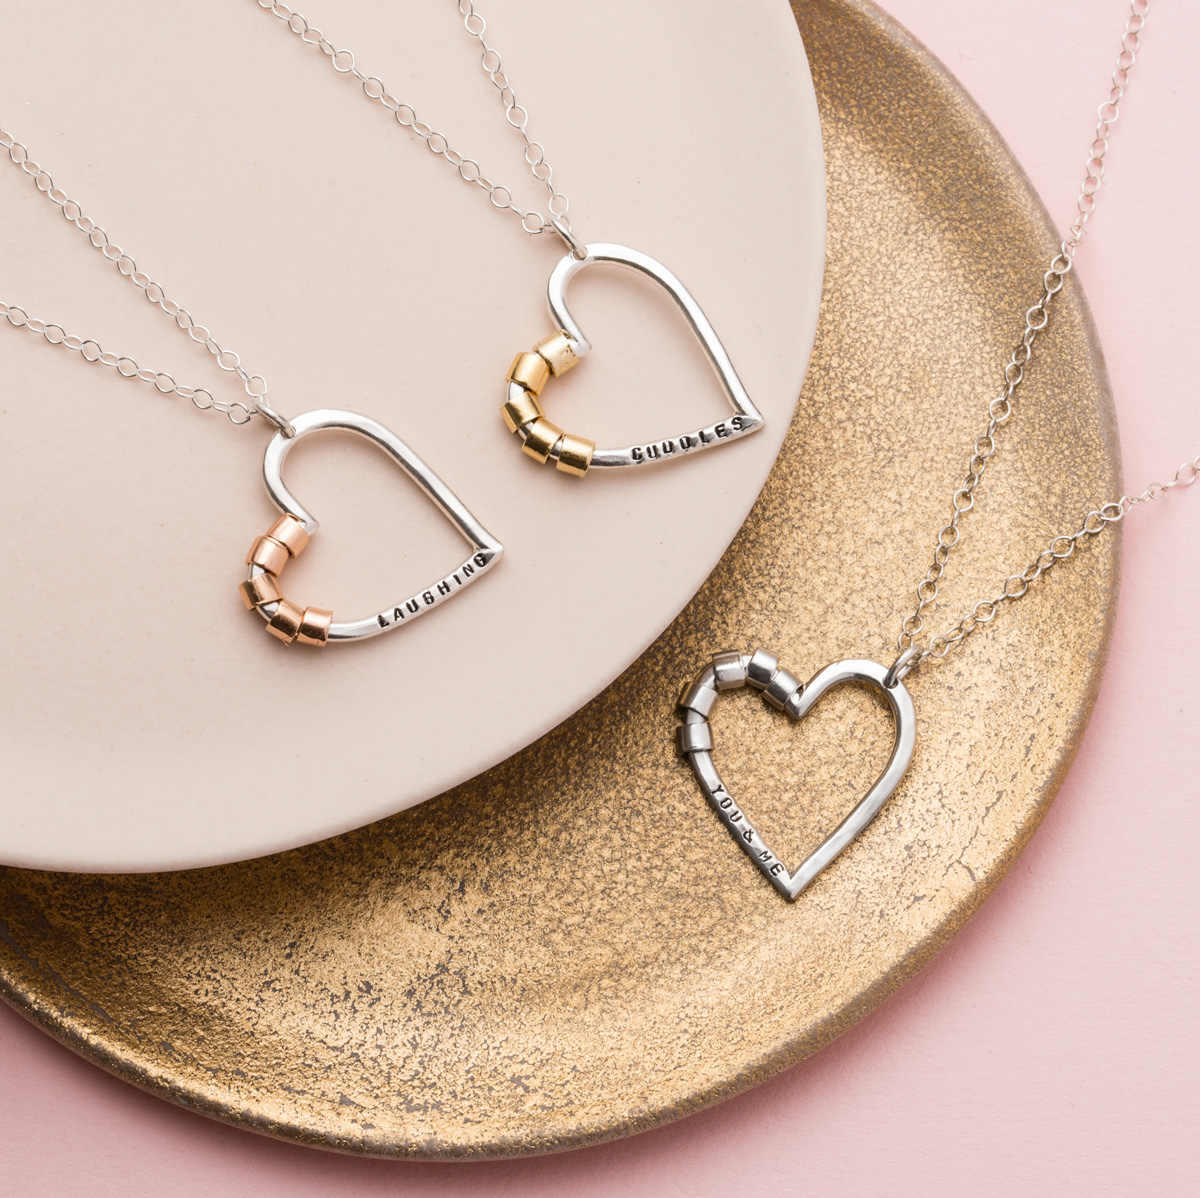 Personalised Posh Totty Designs Secret Heart Necklace